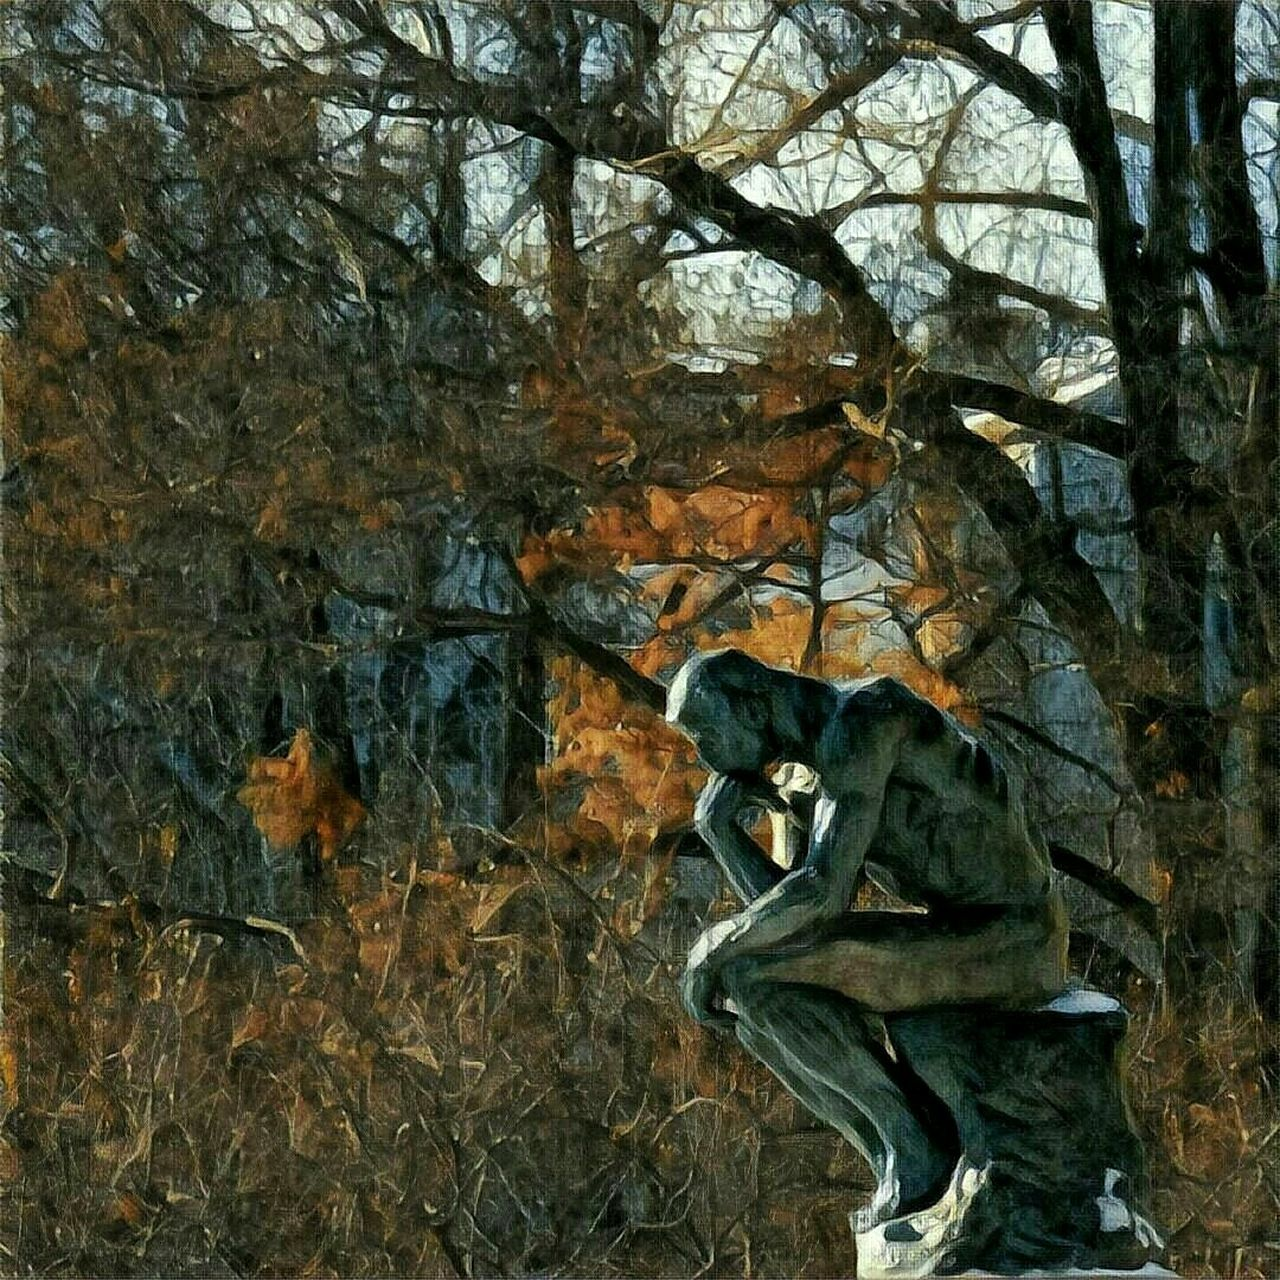 The Thinker, December 2016 Art Sculpture Outdoors Nature Beauty In Nature Prisma Prismacolor Rodin Kansas City Creativity Museum Artistic Photo Tree Day Branch